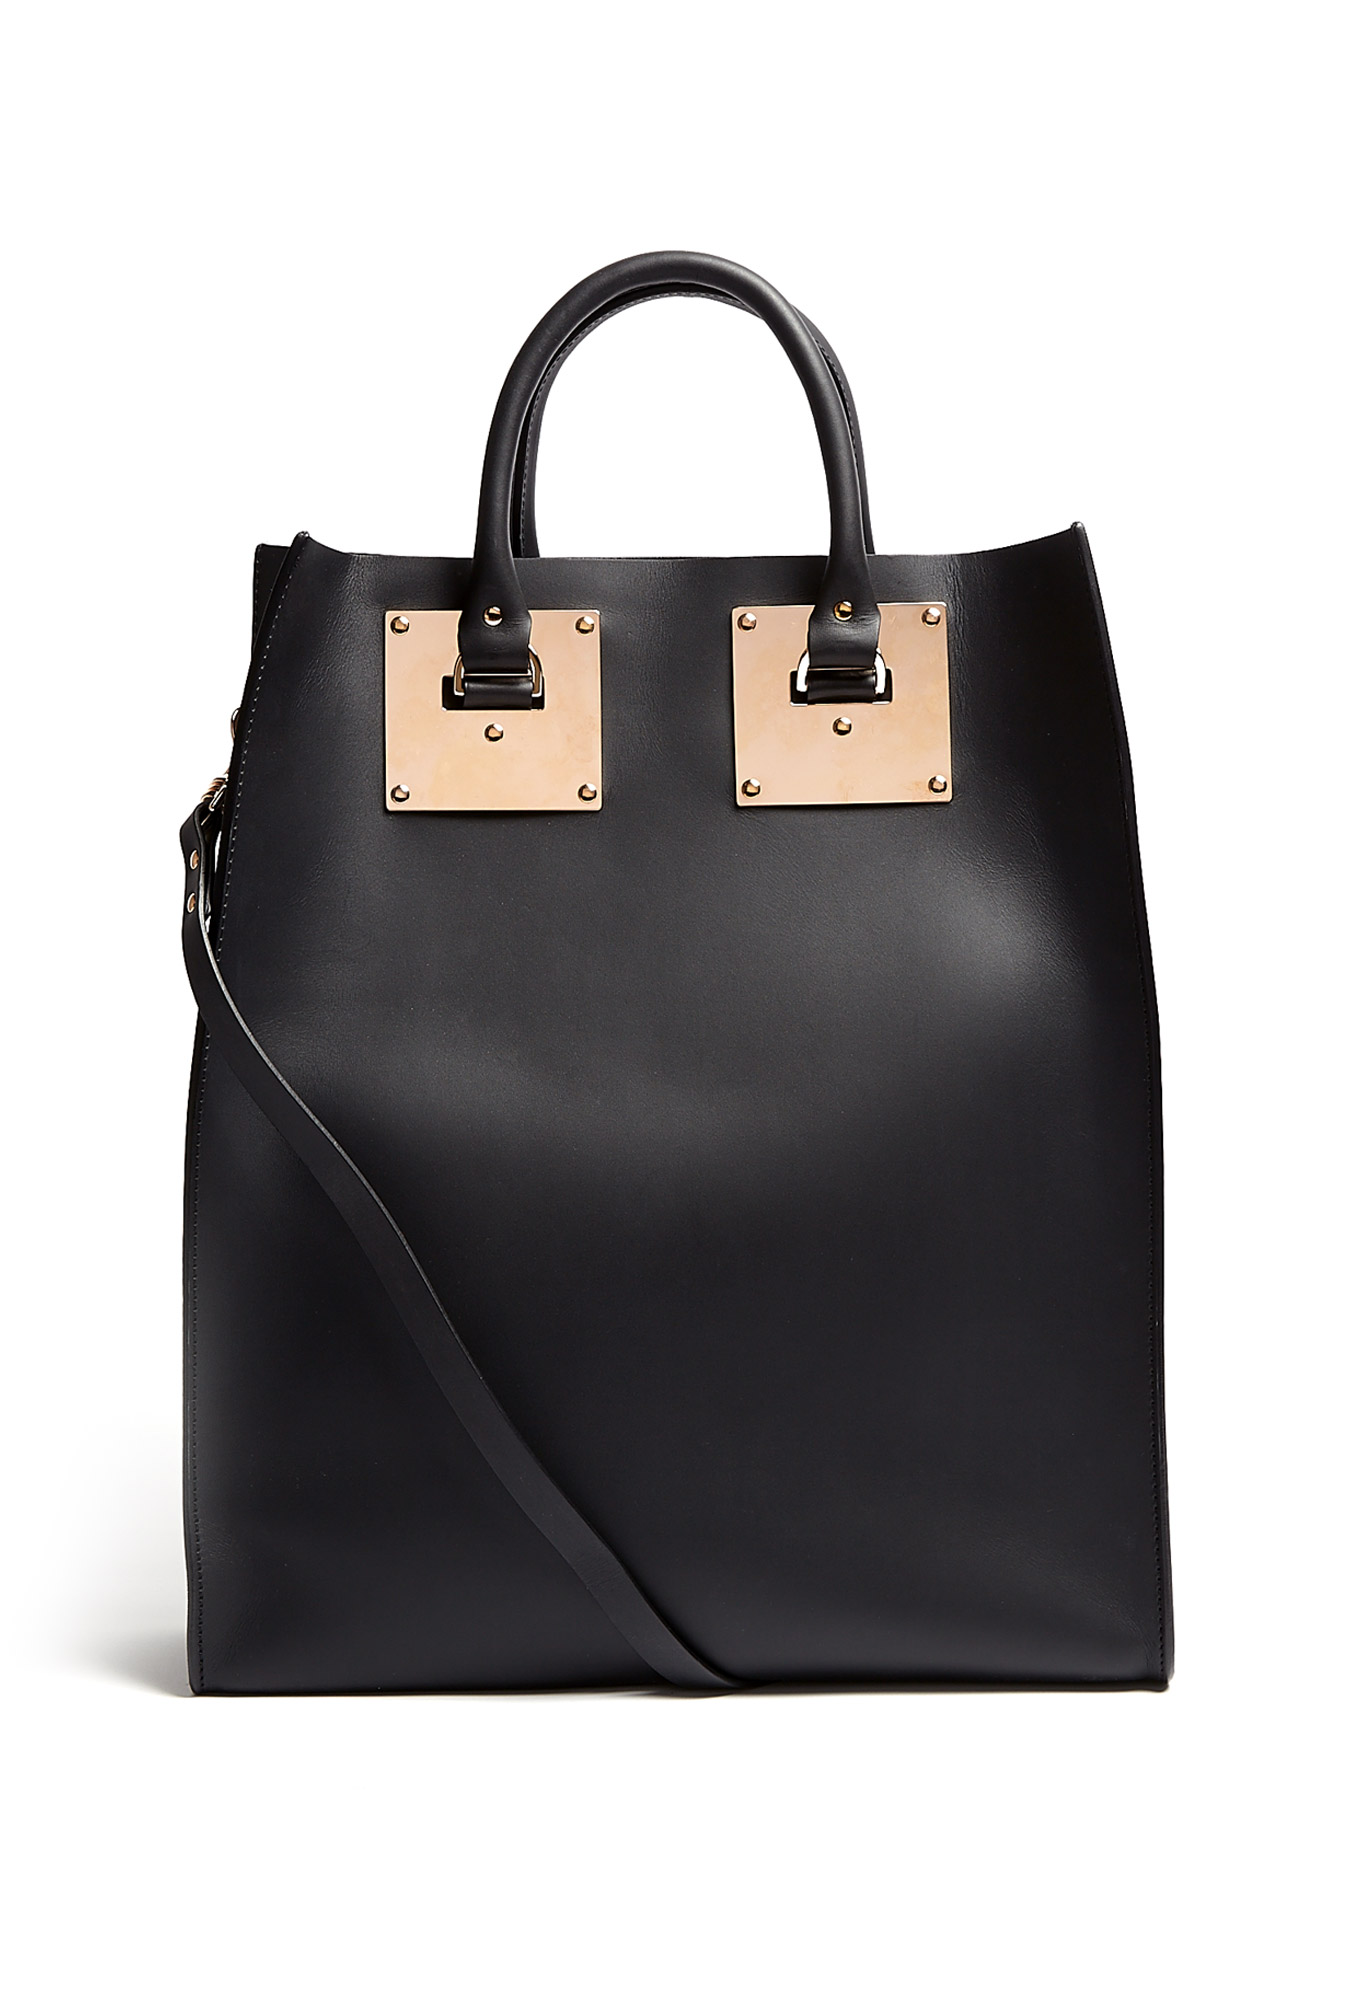 Black Large Structured Leather Tote Bag by Sophie Hulme